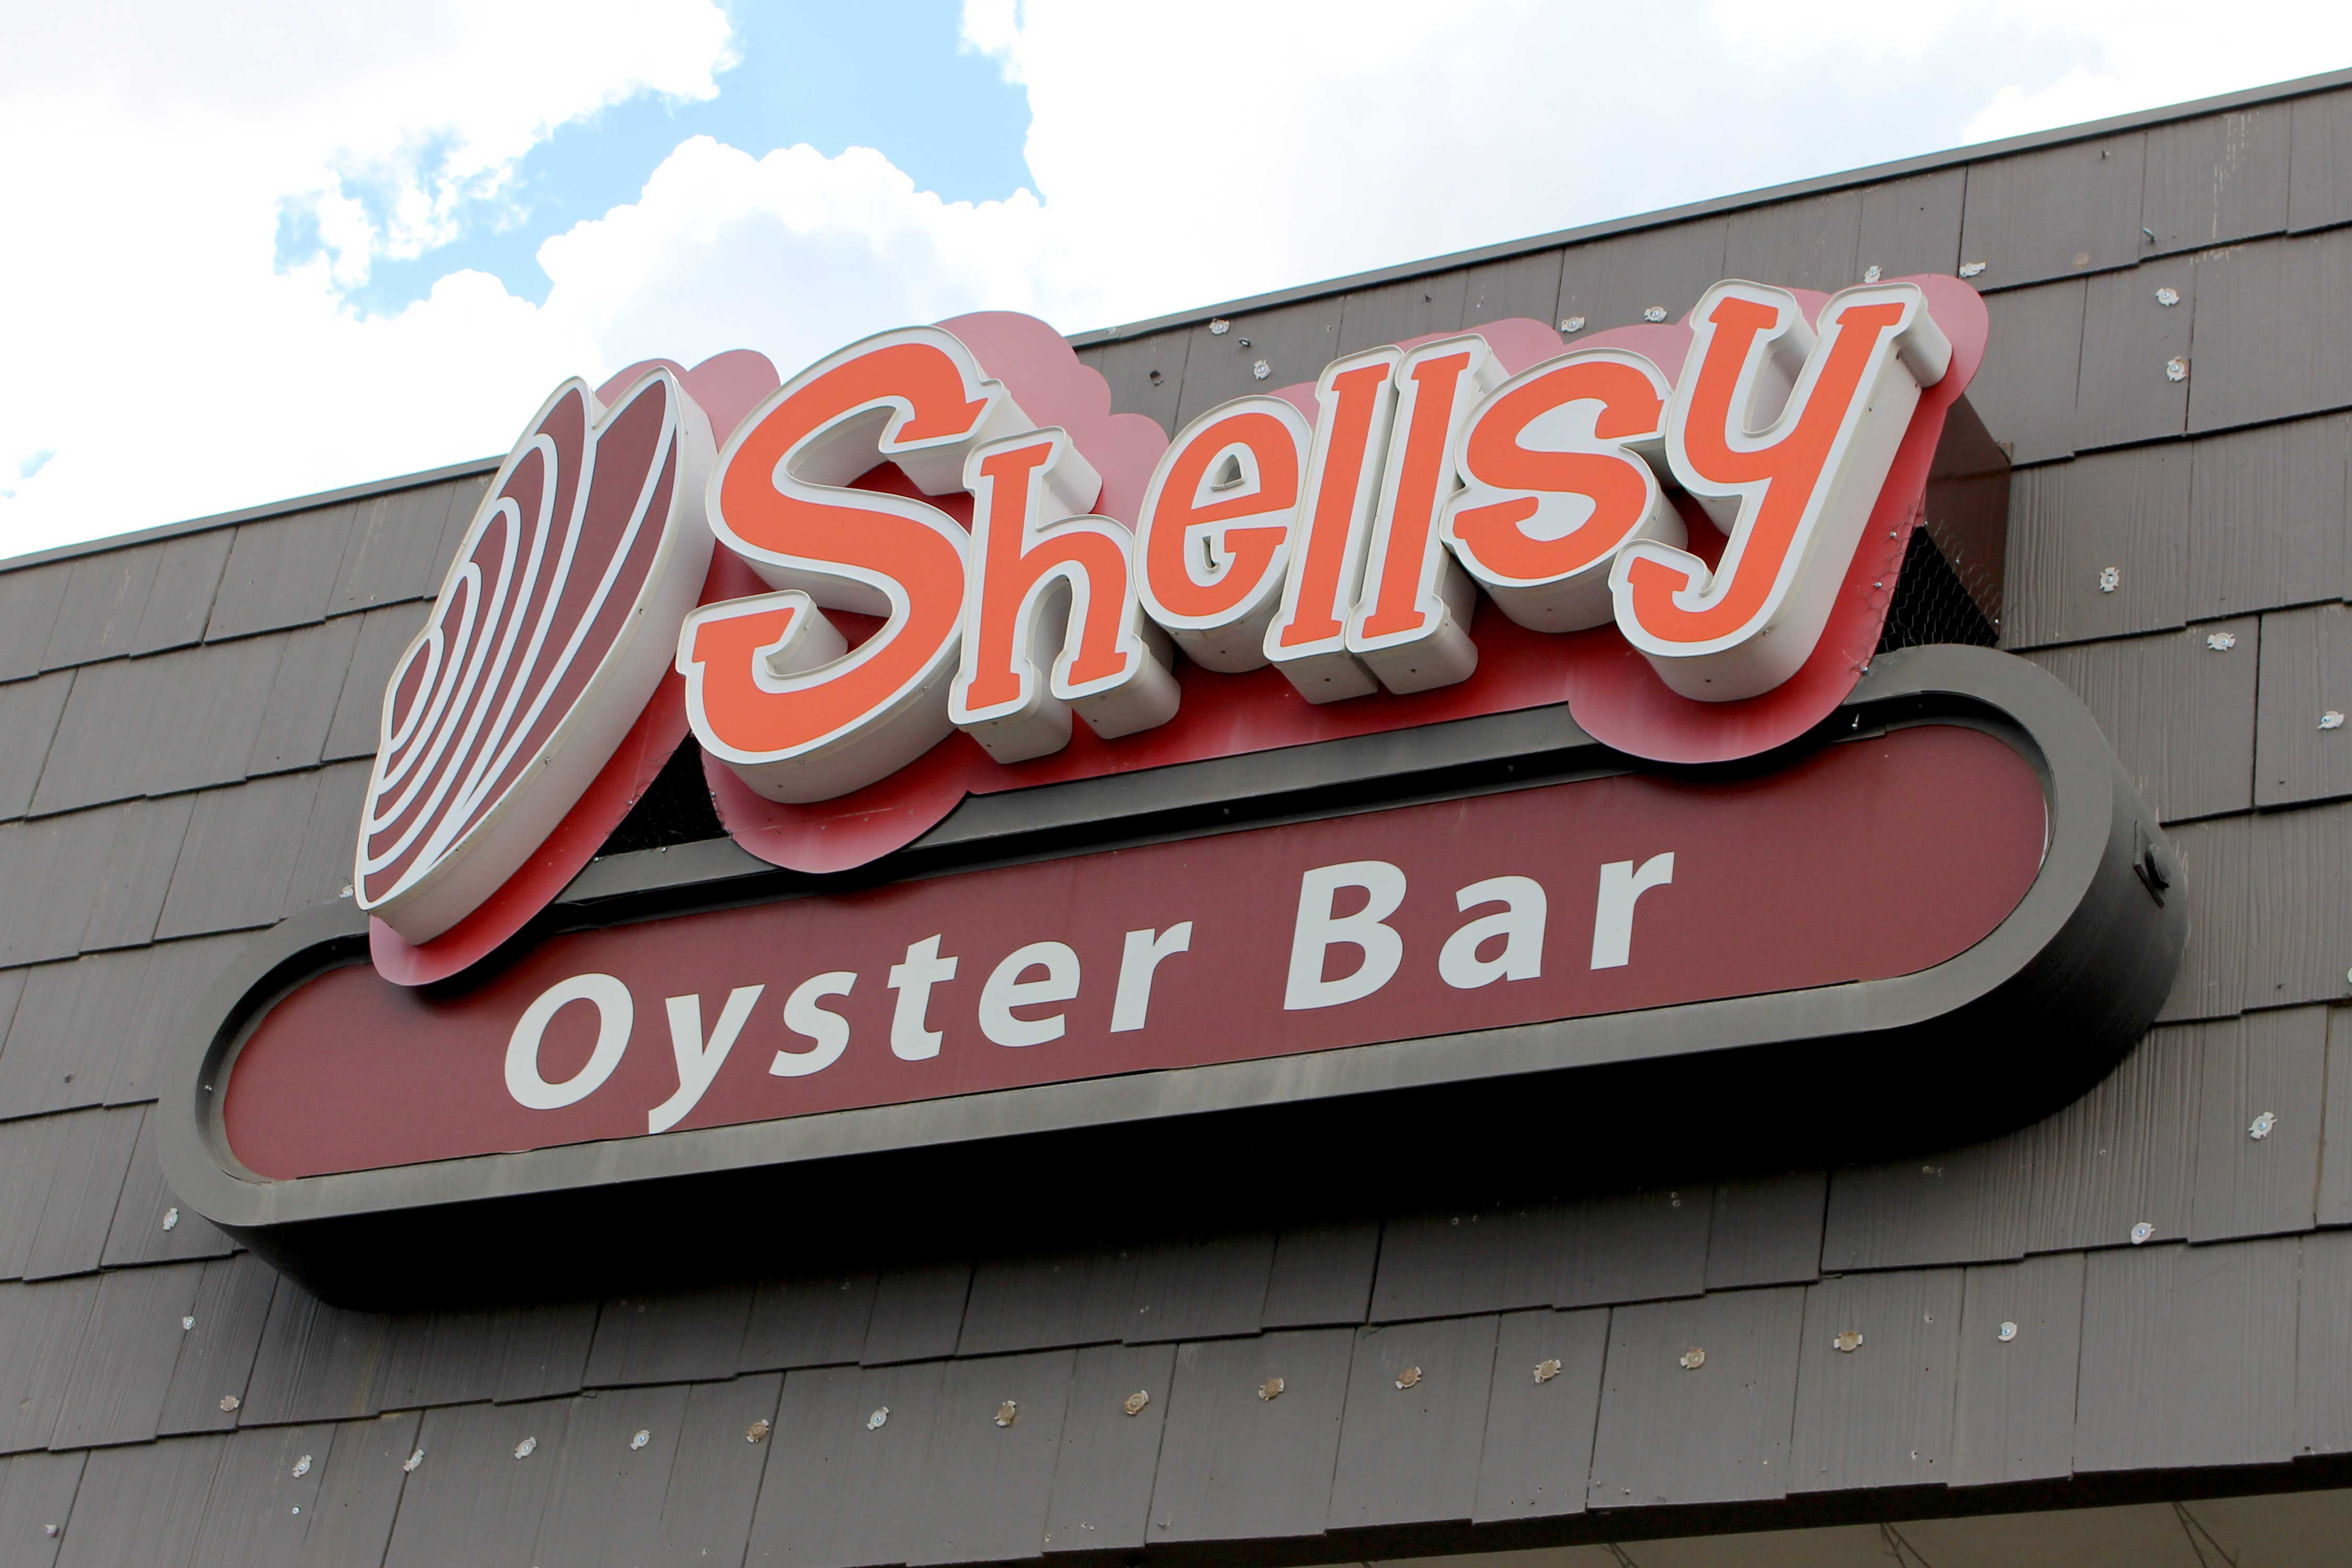 Shellsy's Oyster Bar is located on 3737 N. Mesa St.